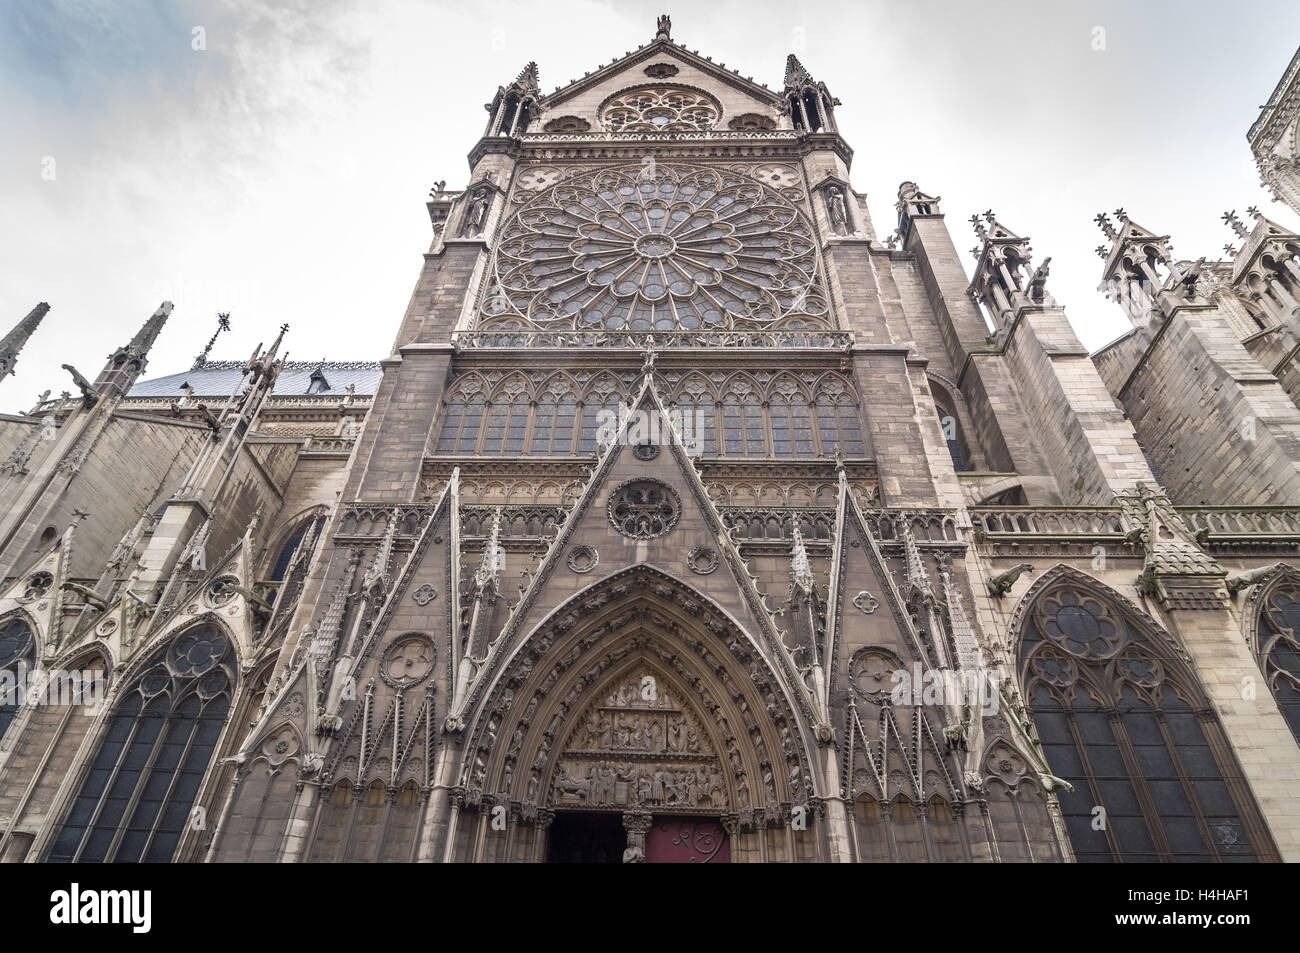 The North Facade Of Catholic Cathedral Notre Dame De Paris Built In French Gothic Architecture